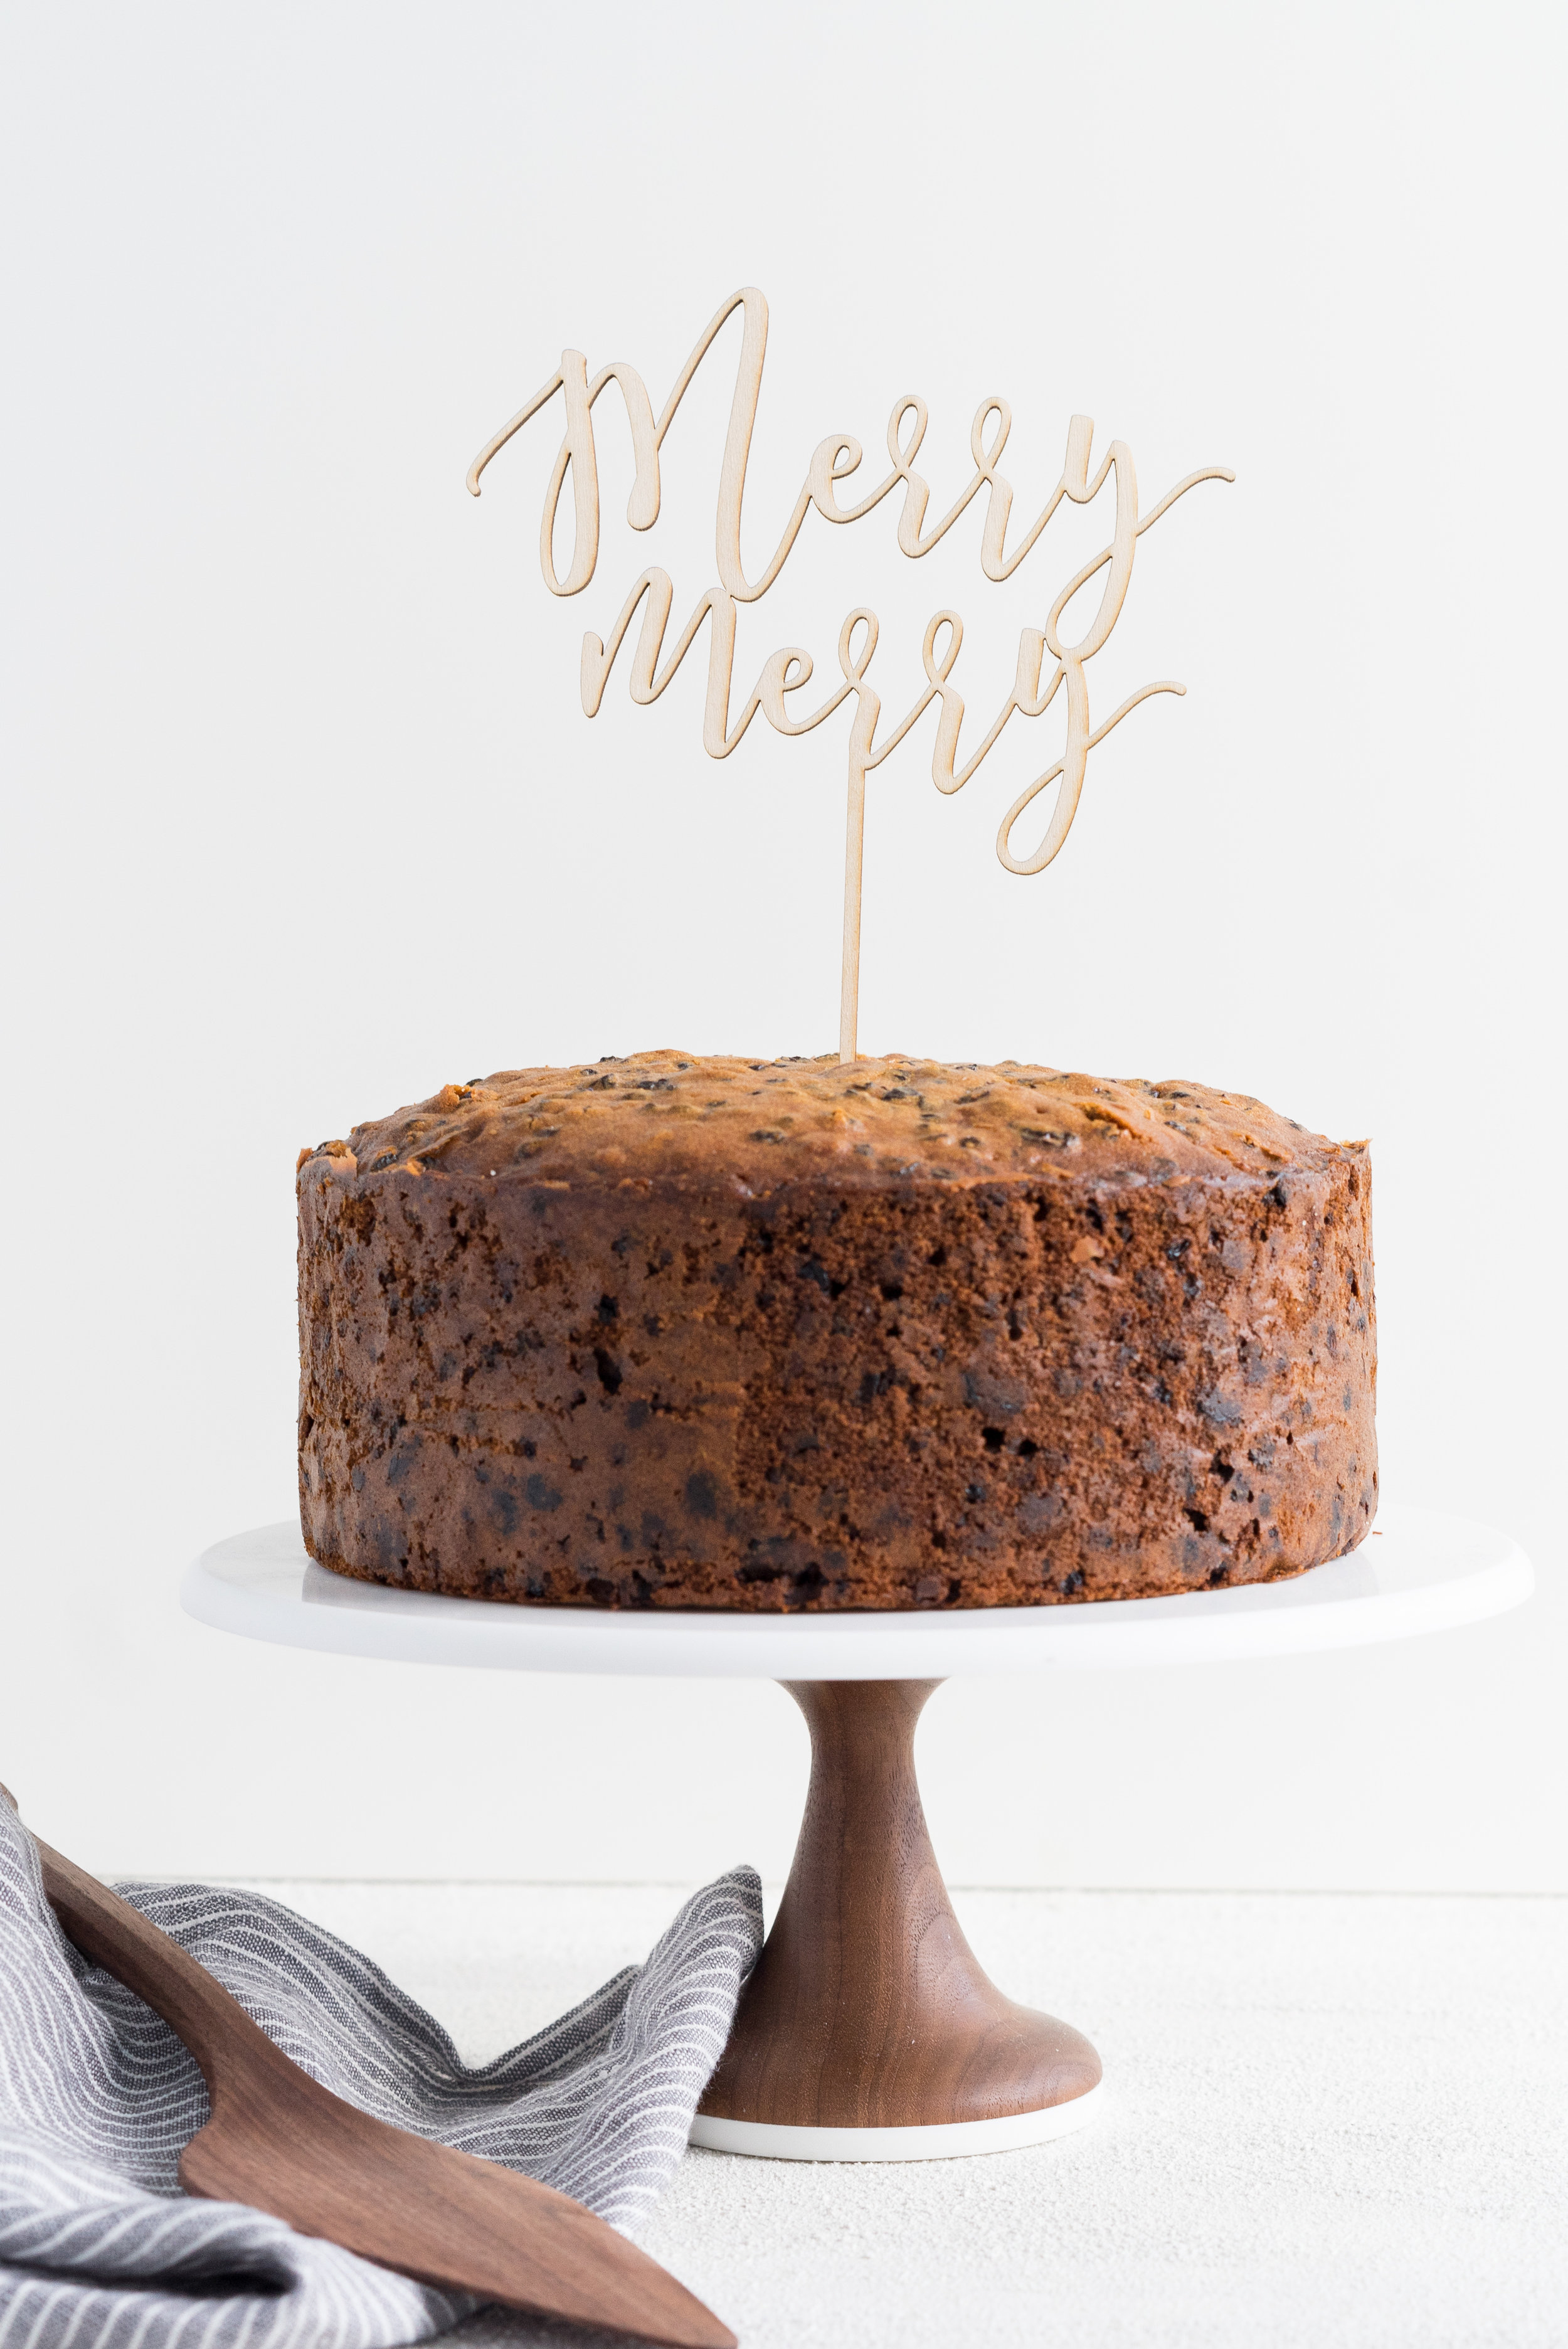 My Great Grandmother's Christmas cake - a rich fruit cake, loaded with dried fruit and christmas spice. A family heirloom in itself!